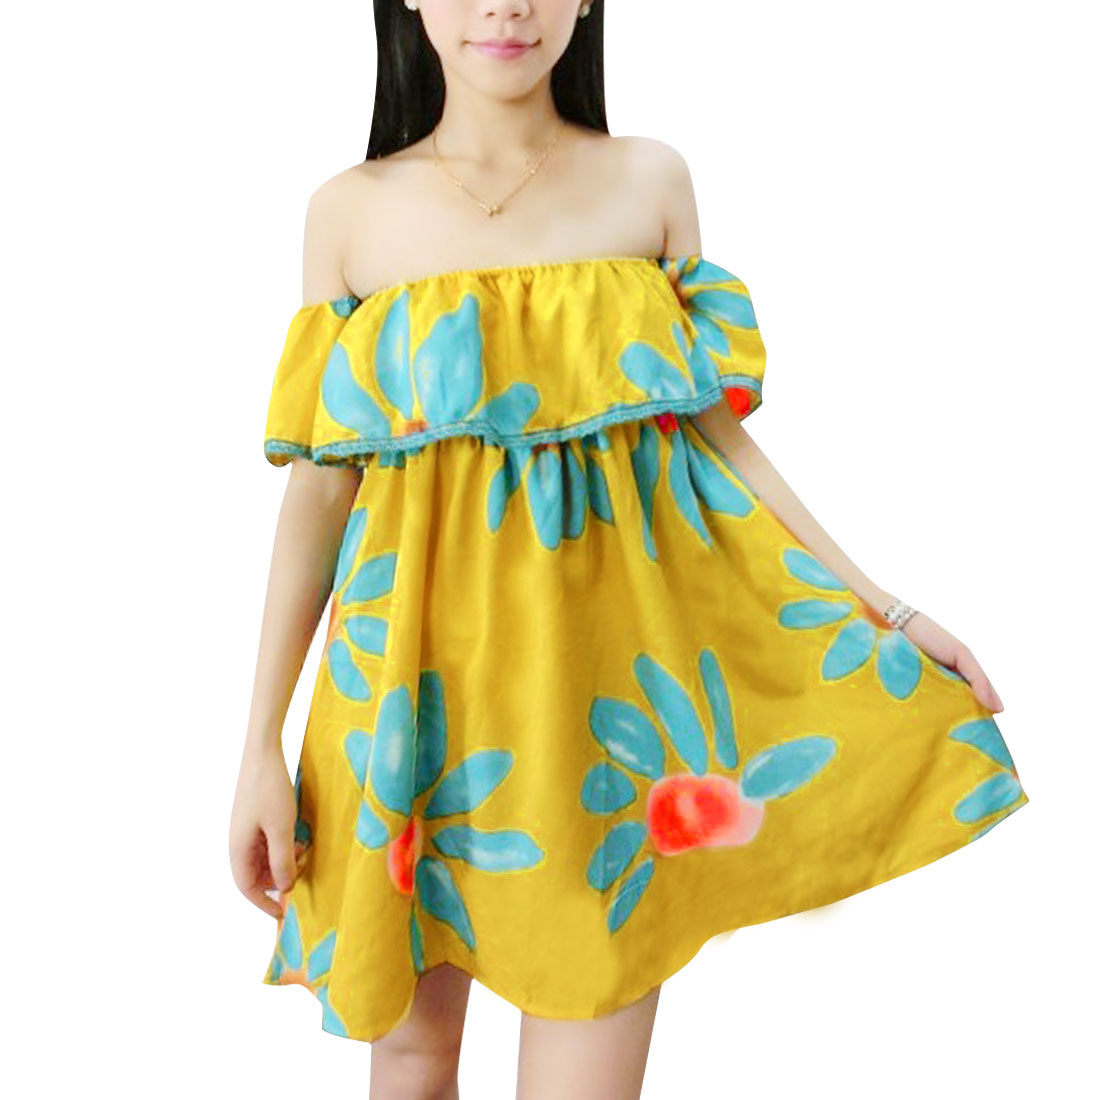 Woman Chic Off Shoulder Design Flower Pattern Elastic Upper Yellow Tunic Tops S